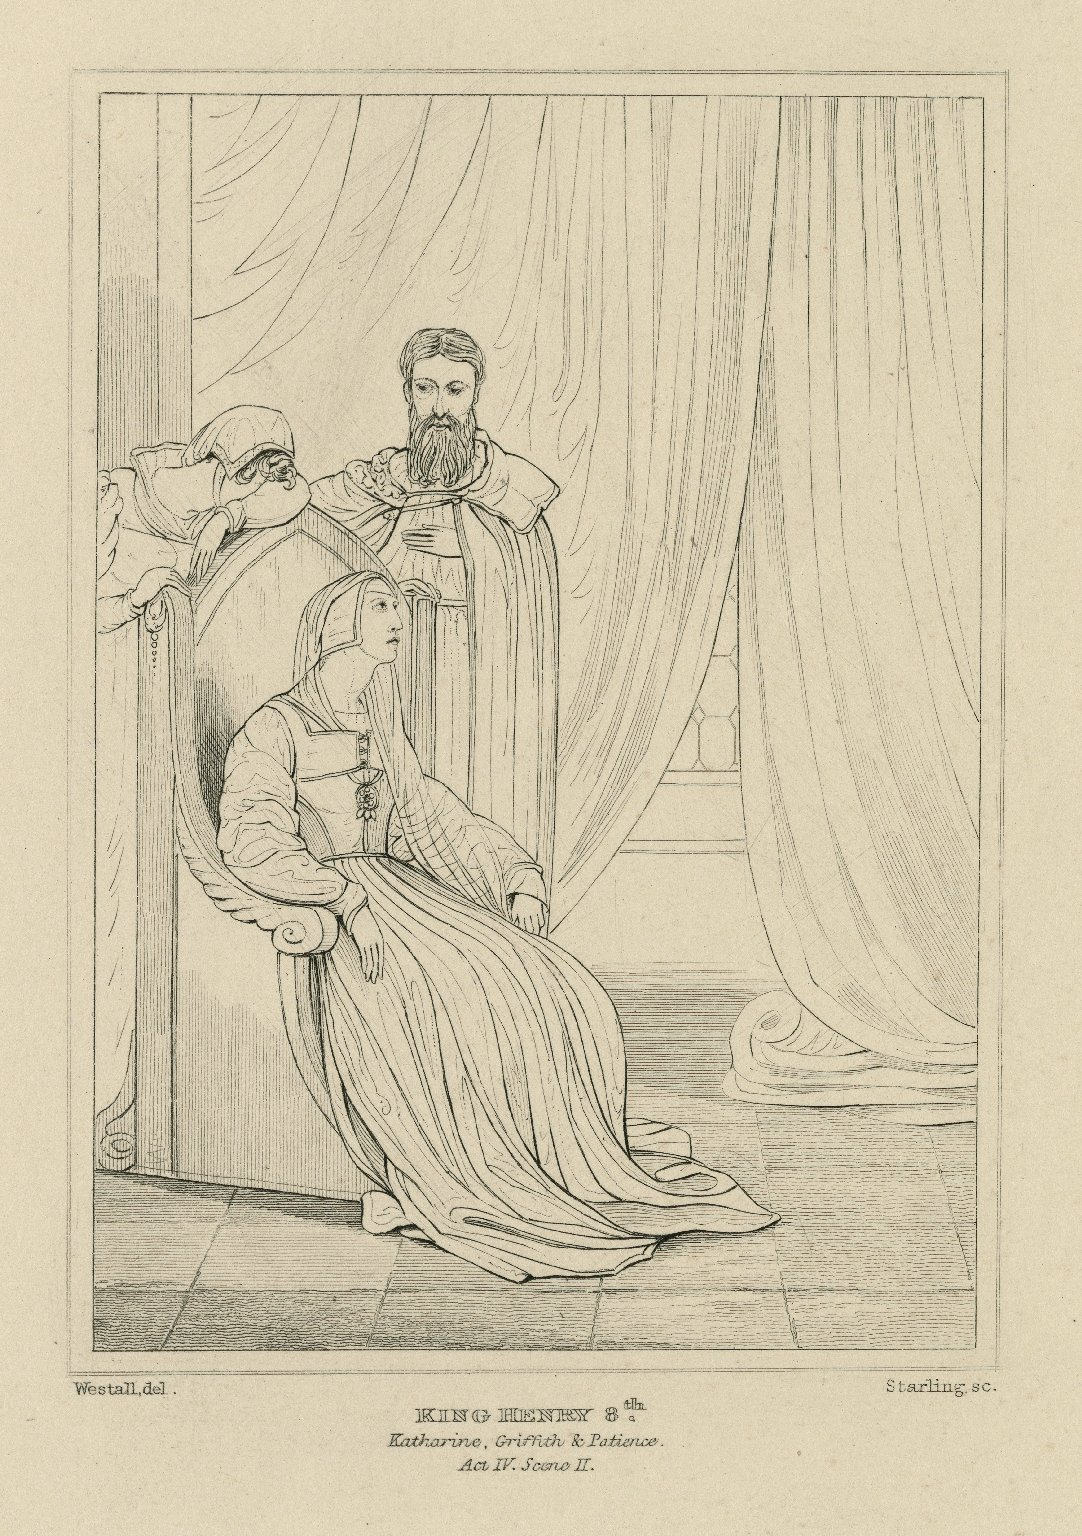 King Henry VIII, act 4, scene 2, Katherine, Griffith and Patience [graphic] / painted by R. Westall ; Starling, sc.